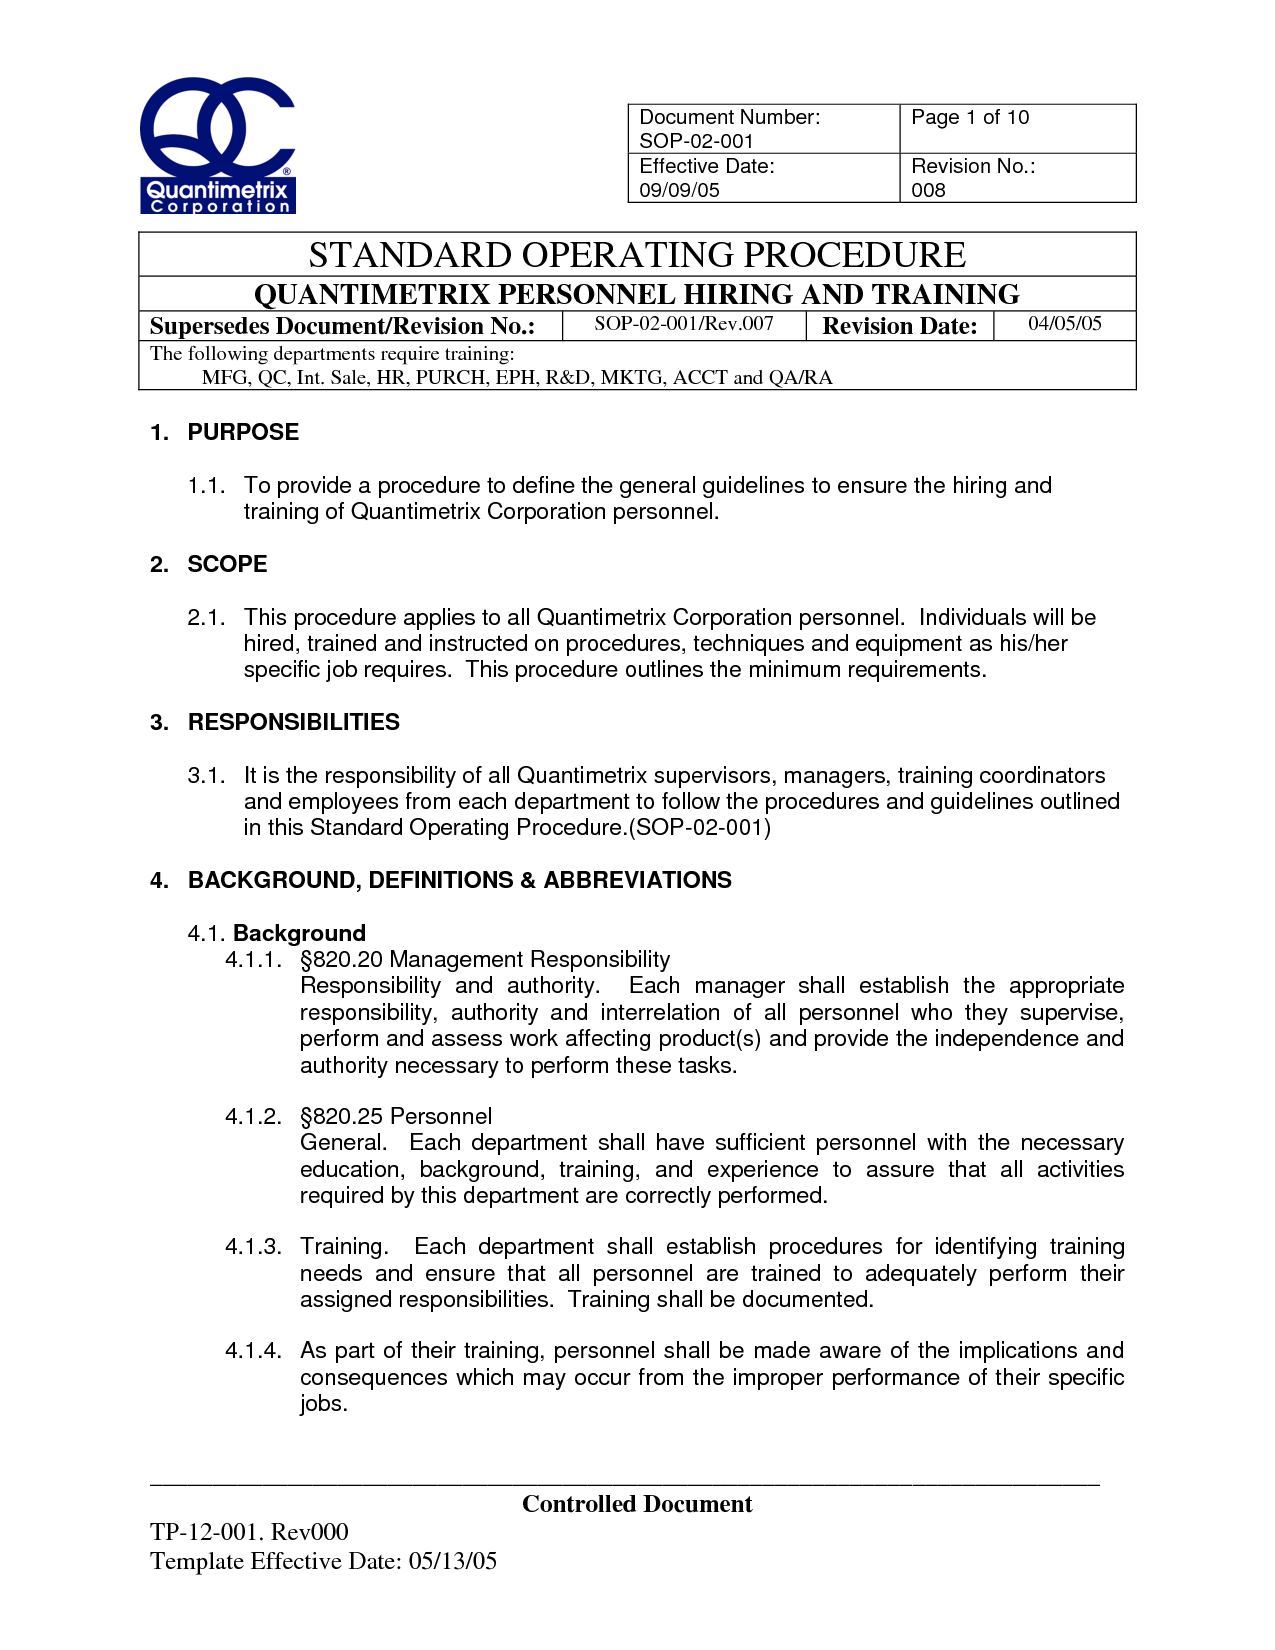 ISO Standard Operating Procedures Template | SOP-02-001 Rev.008 ...